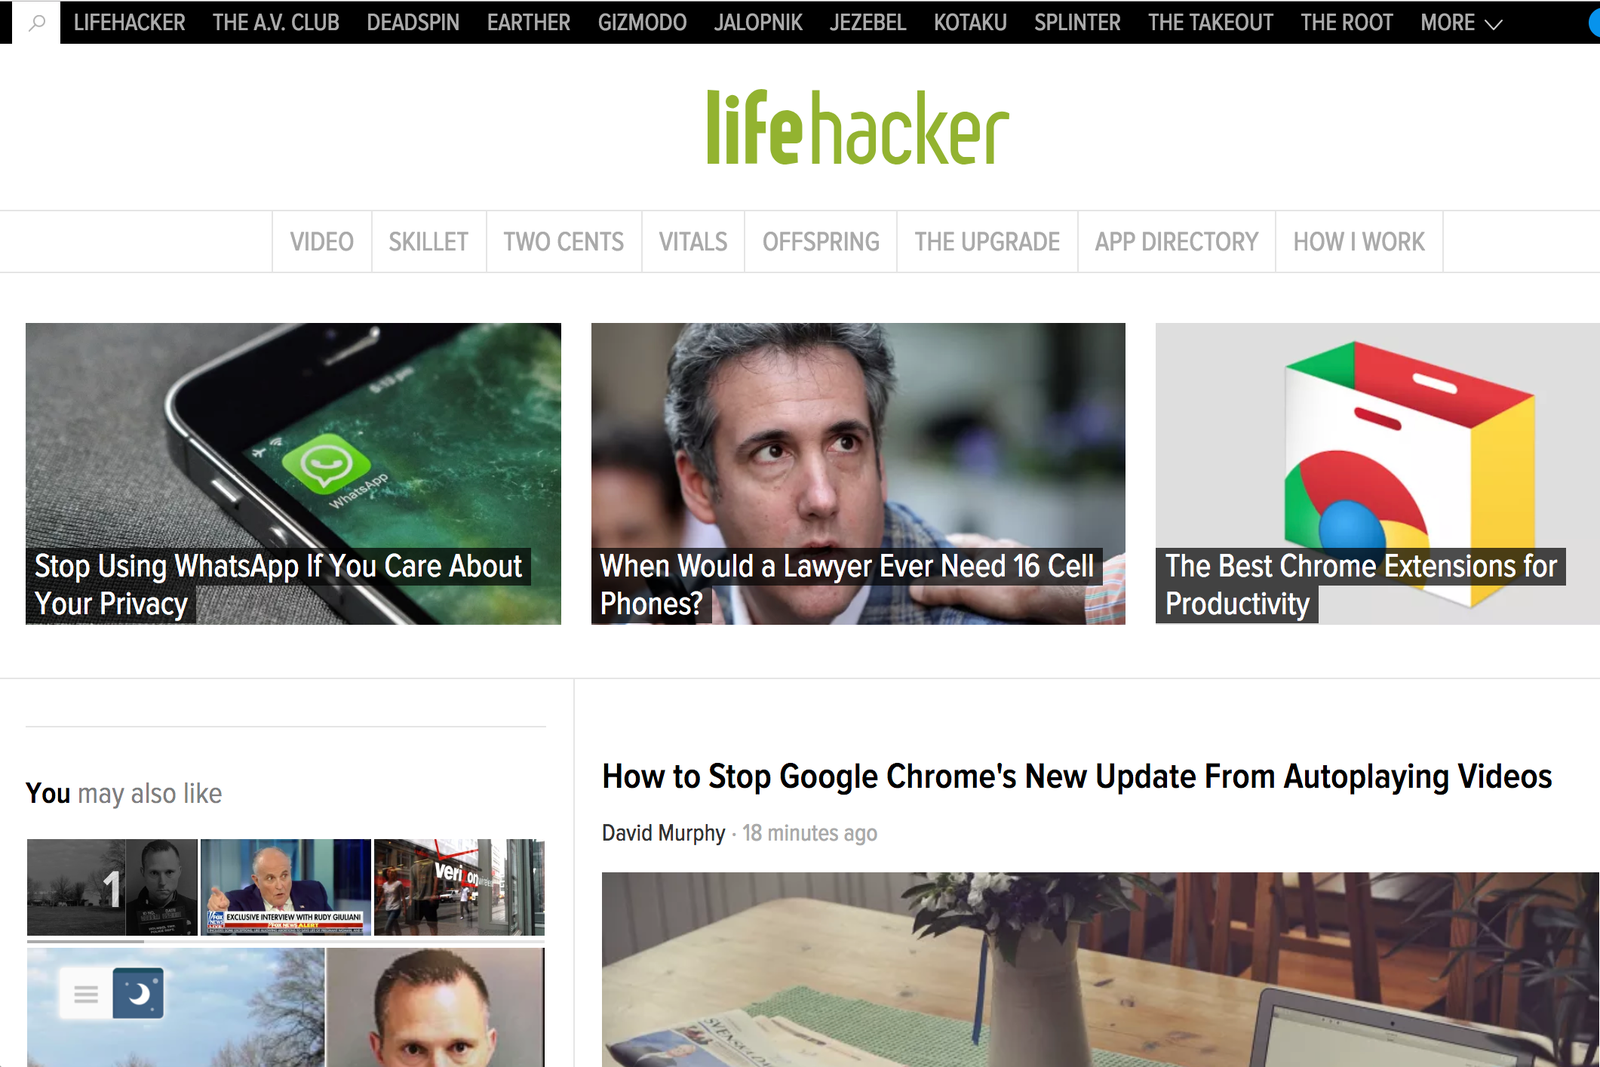 Lifehacker, Night Mode off